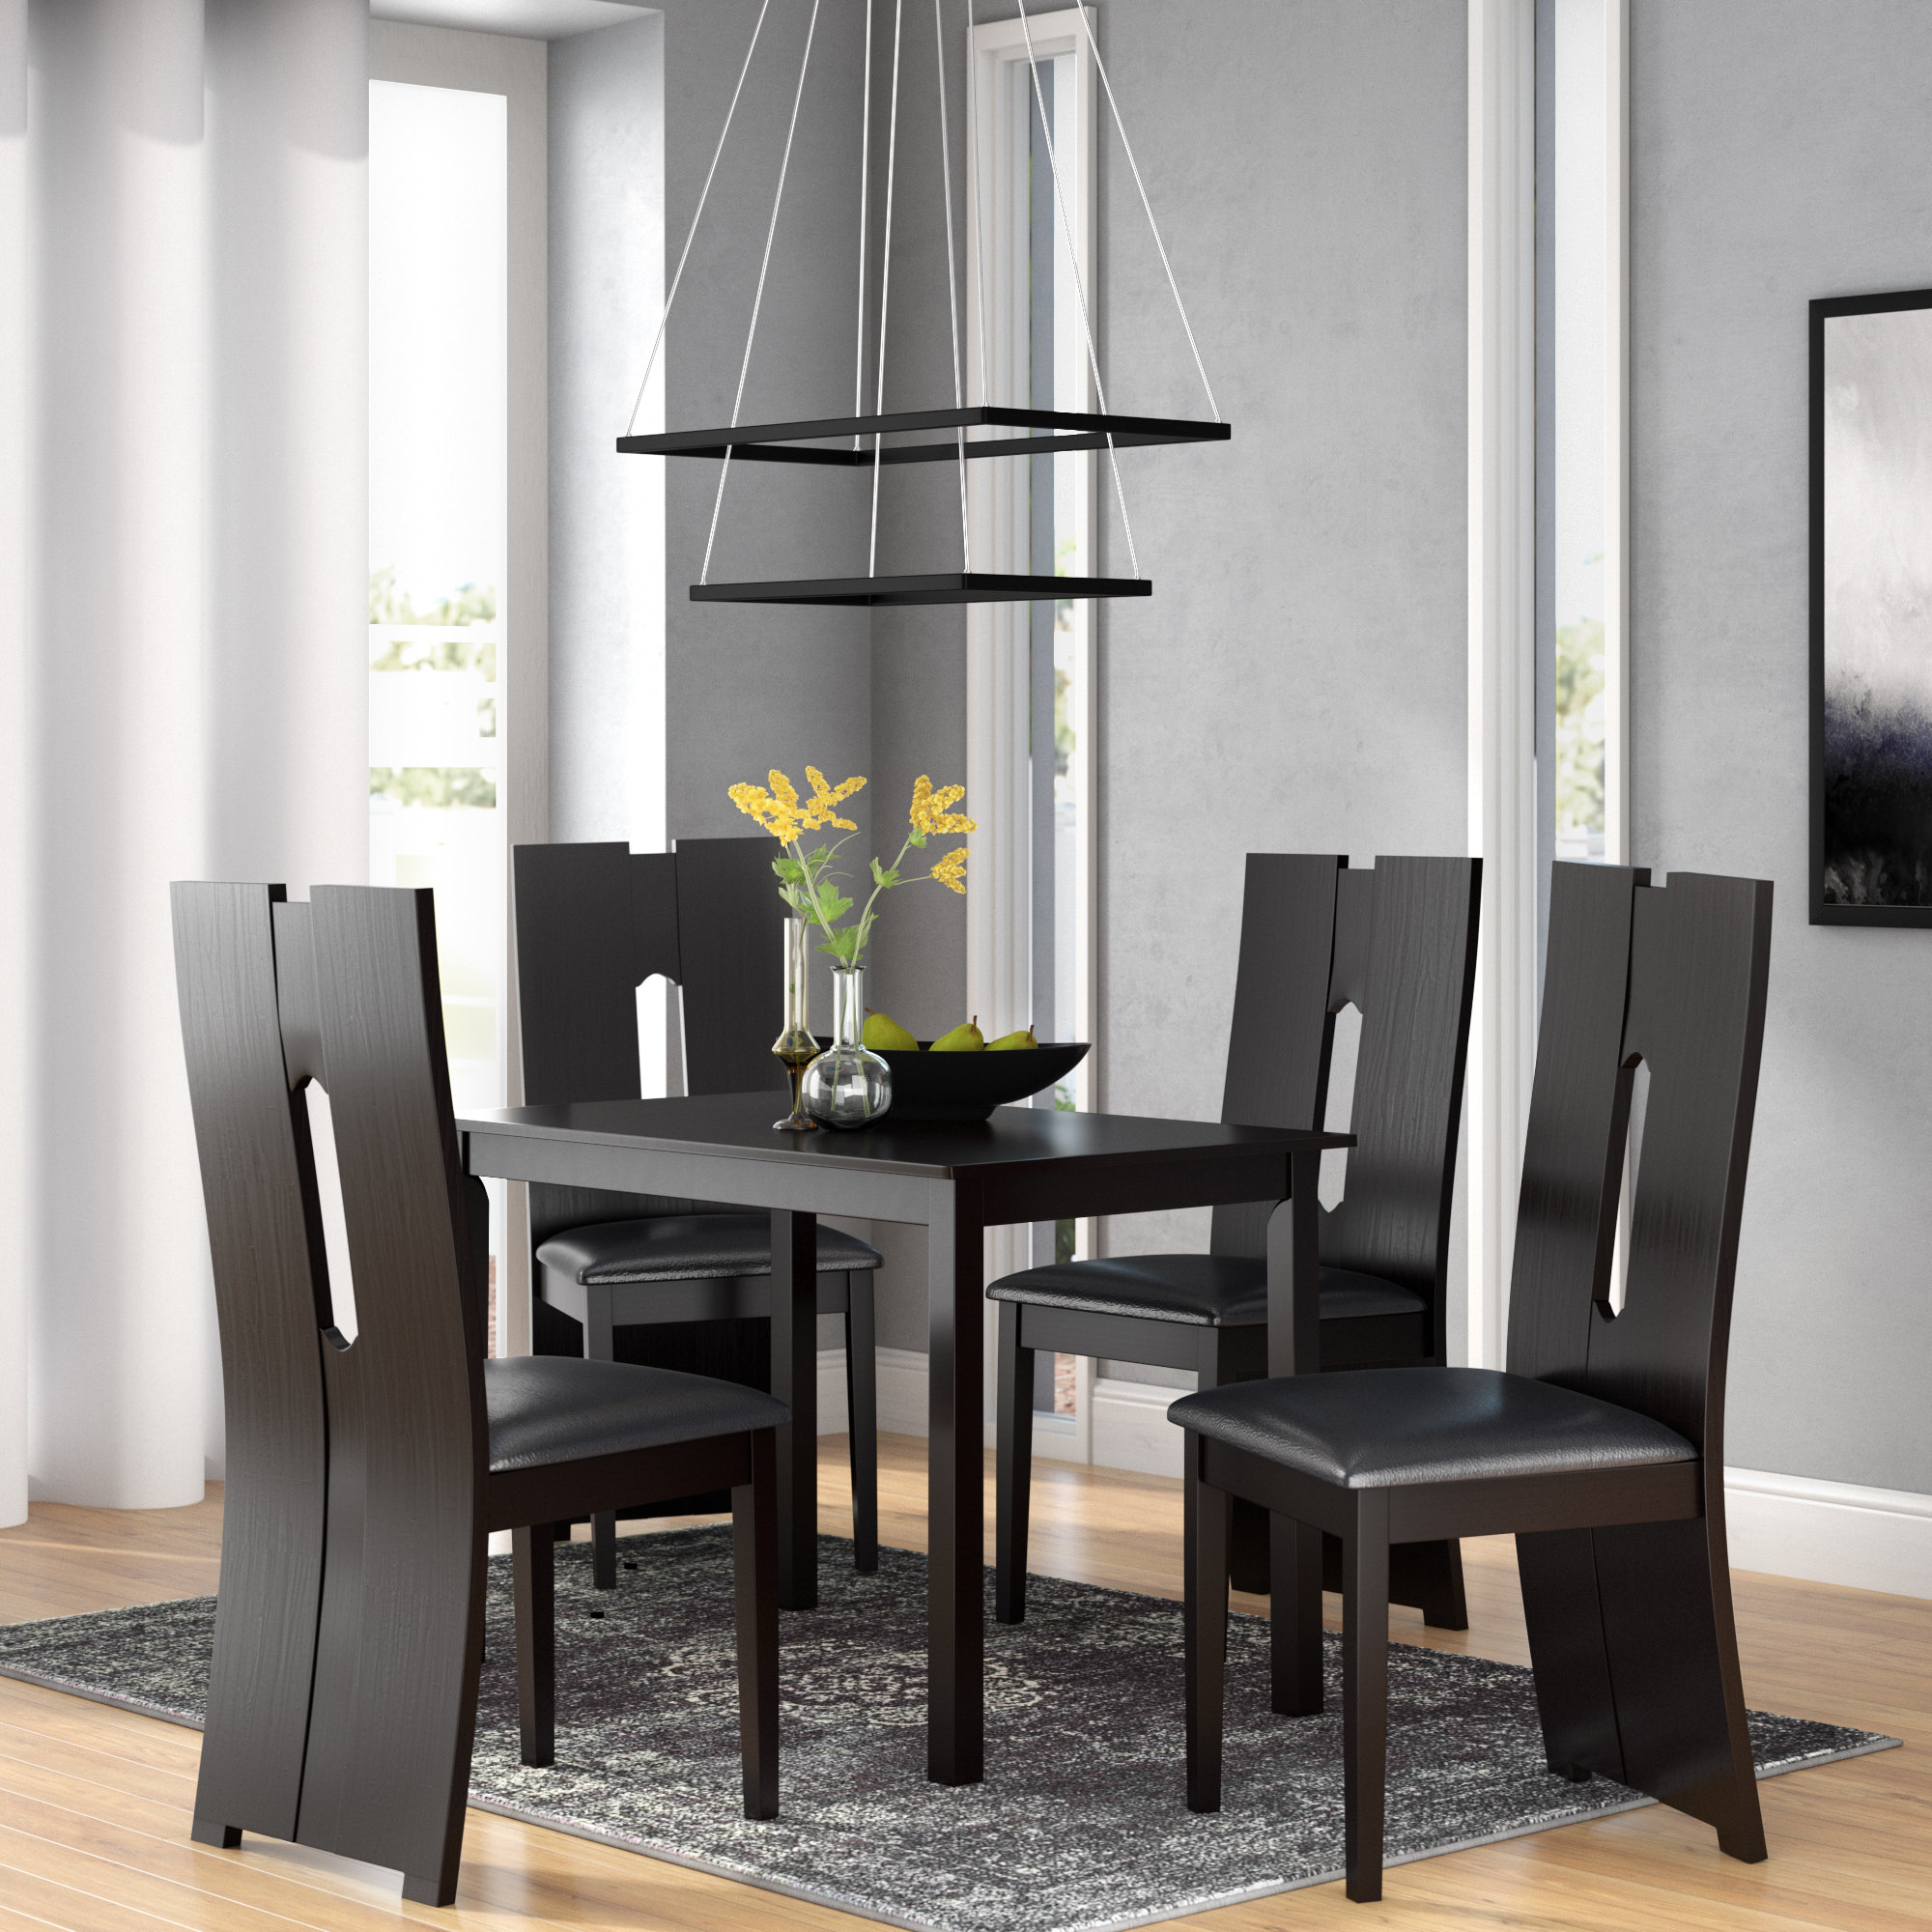 Noyes 5 Piece Dining Sets Within Famous Orren Ellis Onsted Modern And Contemporary 5 Piece Breakfast Nook (View 17 of 25)